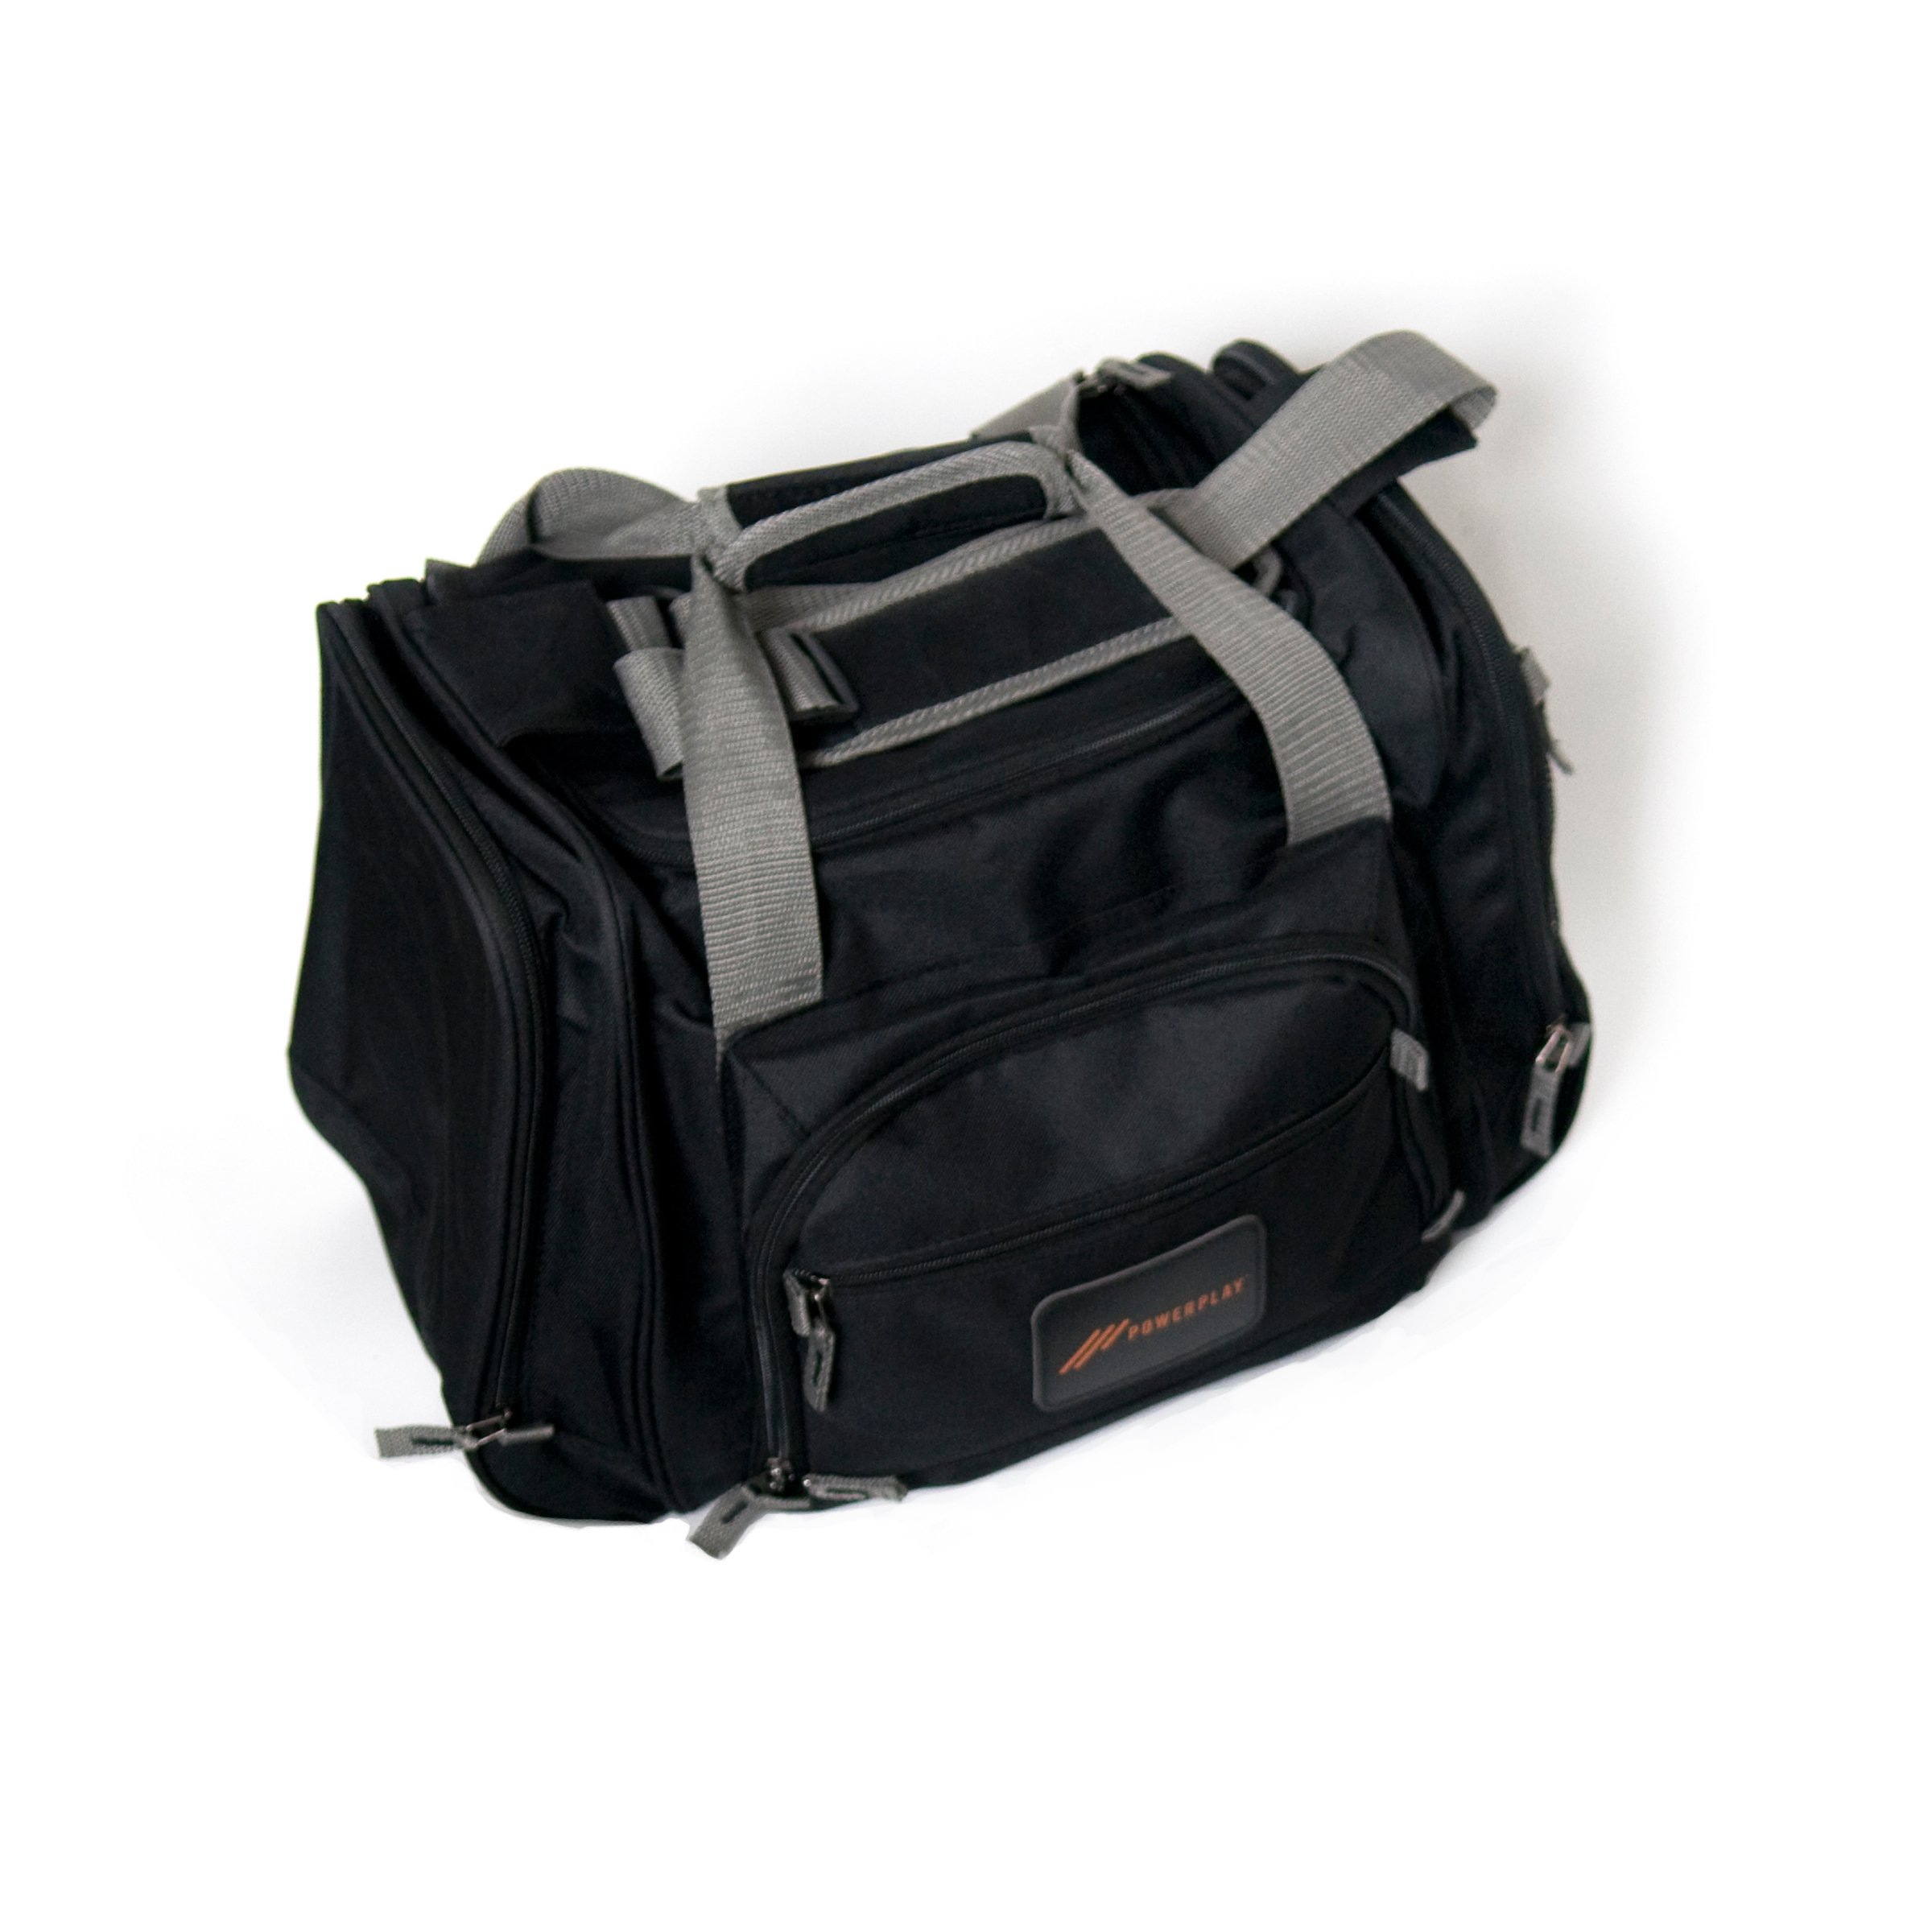 PowerPlay Cold & Compression Insulated Carrying Case by PowerPlay Cold & Compression